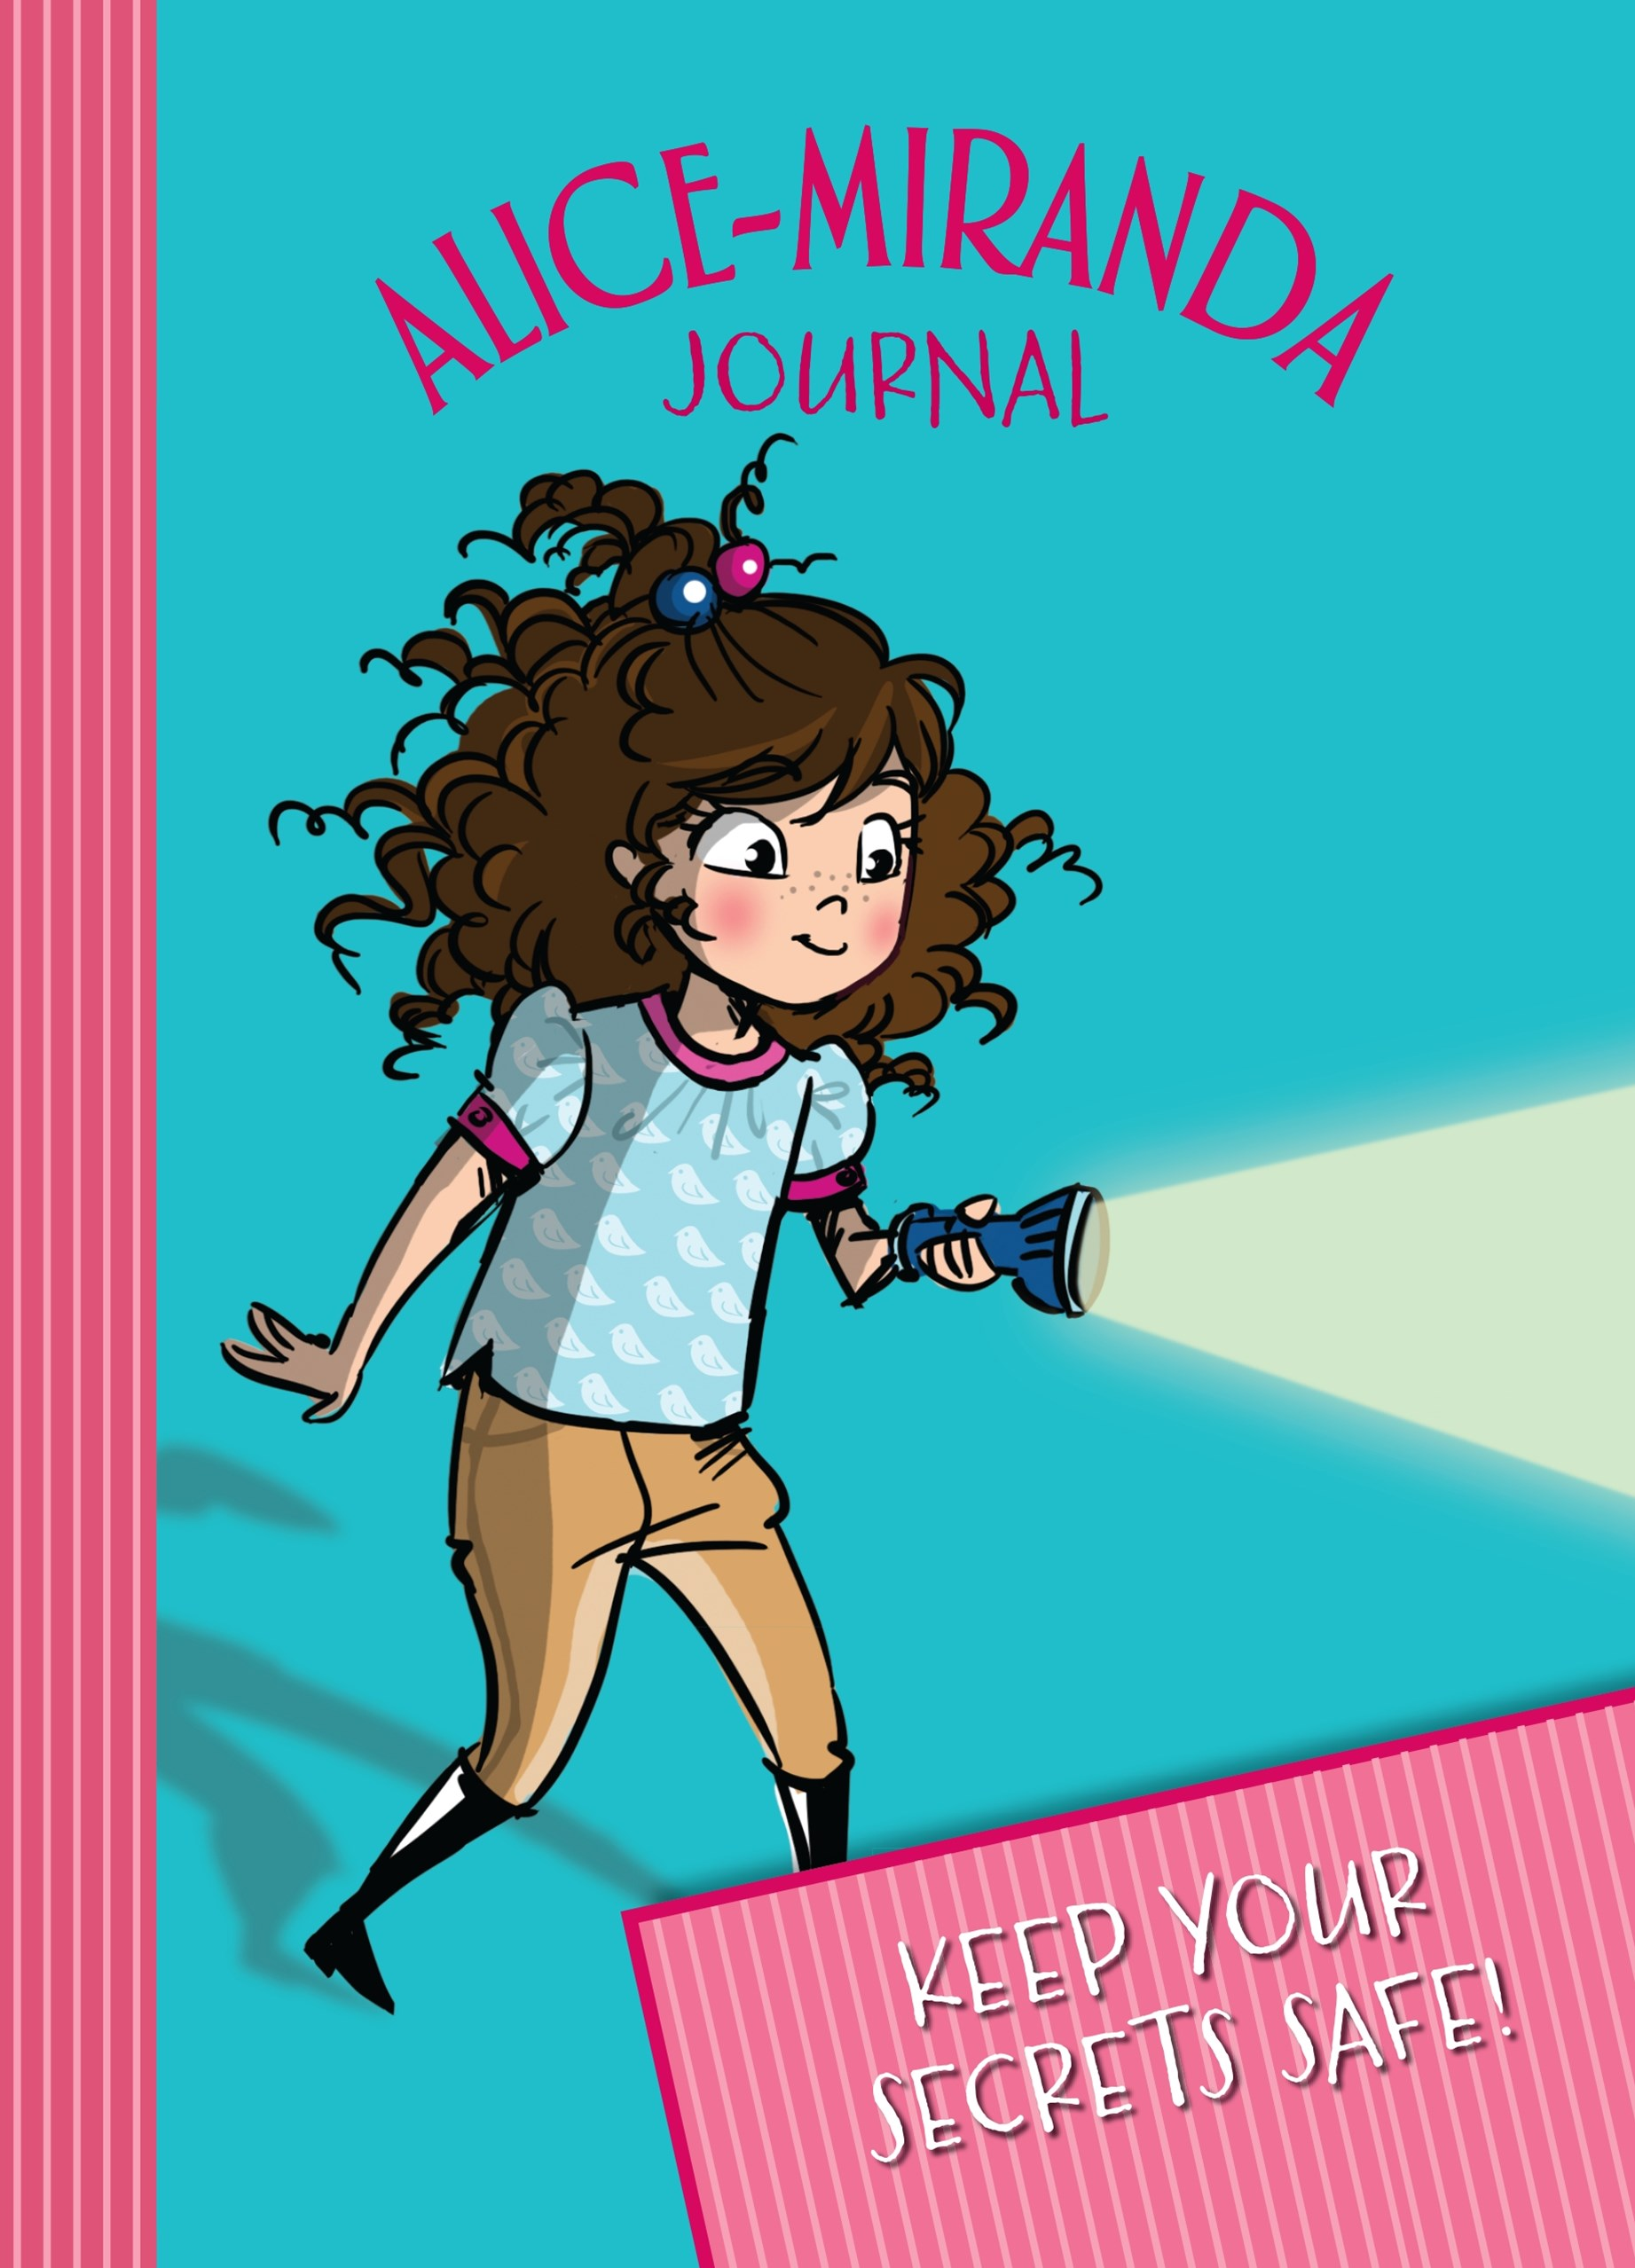 2016 Alice-Miranda Journal with Lock and Key